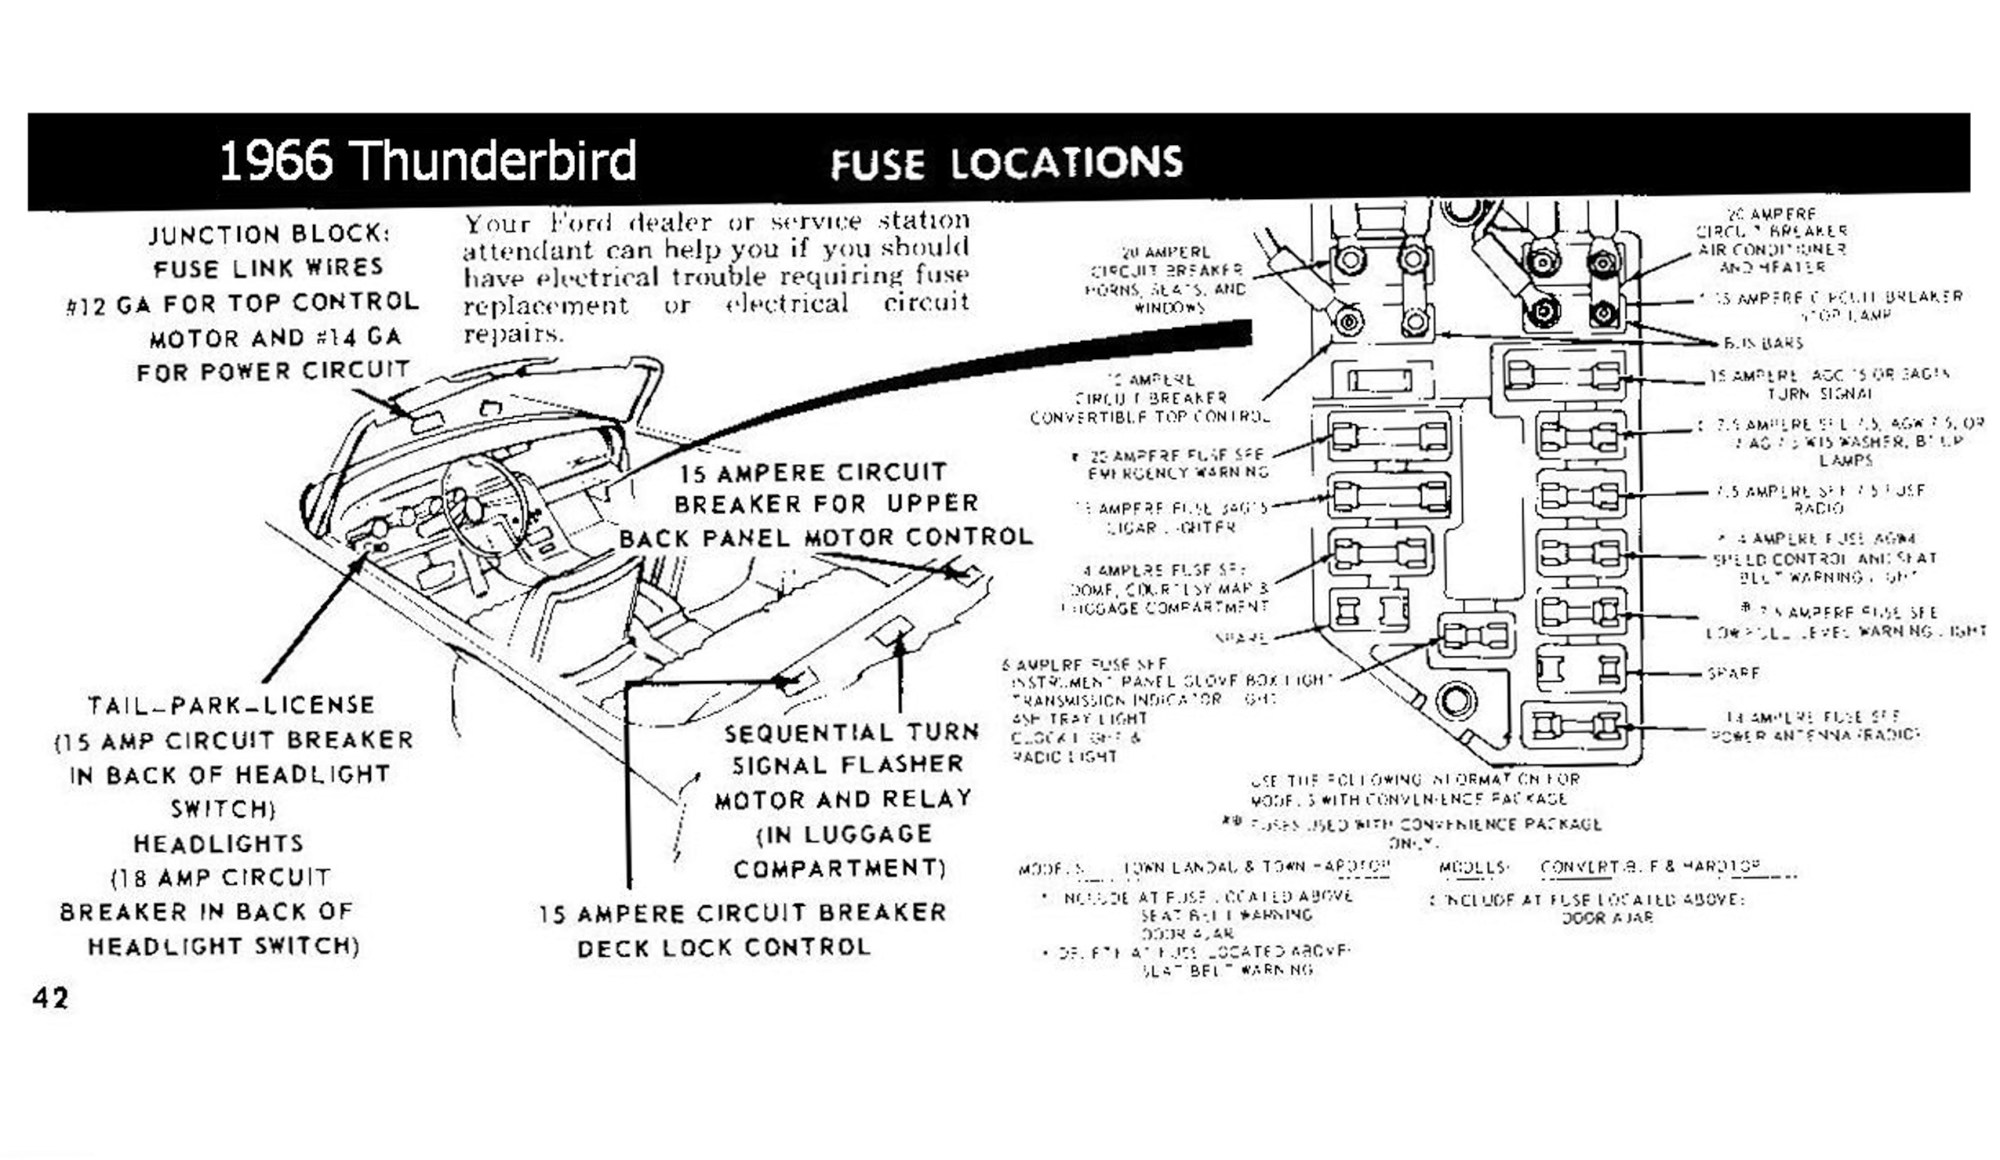 hight resolution of 1964 thunderbird fuse box diagram wiring diagram third level1970 thunderbird fuse box wiring diagram todays 05